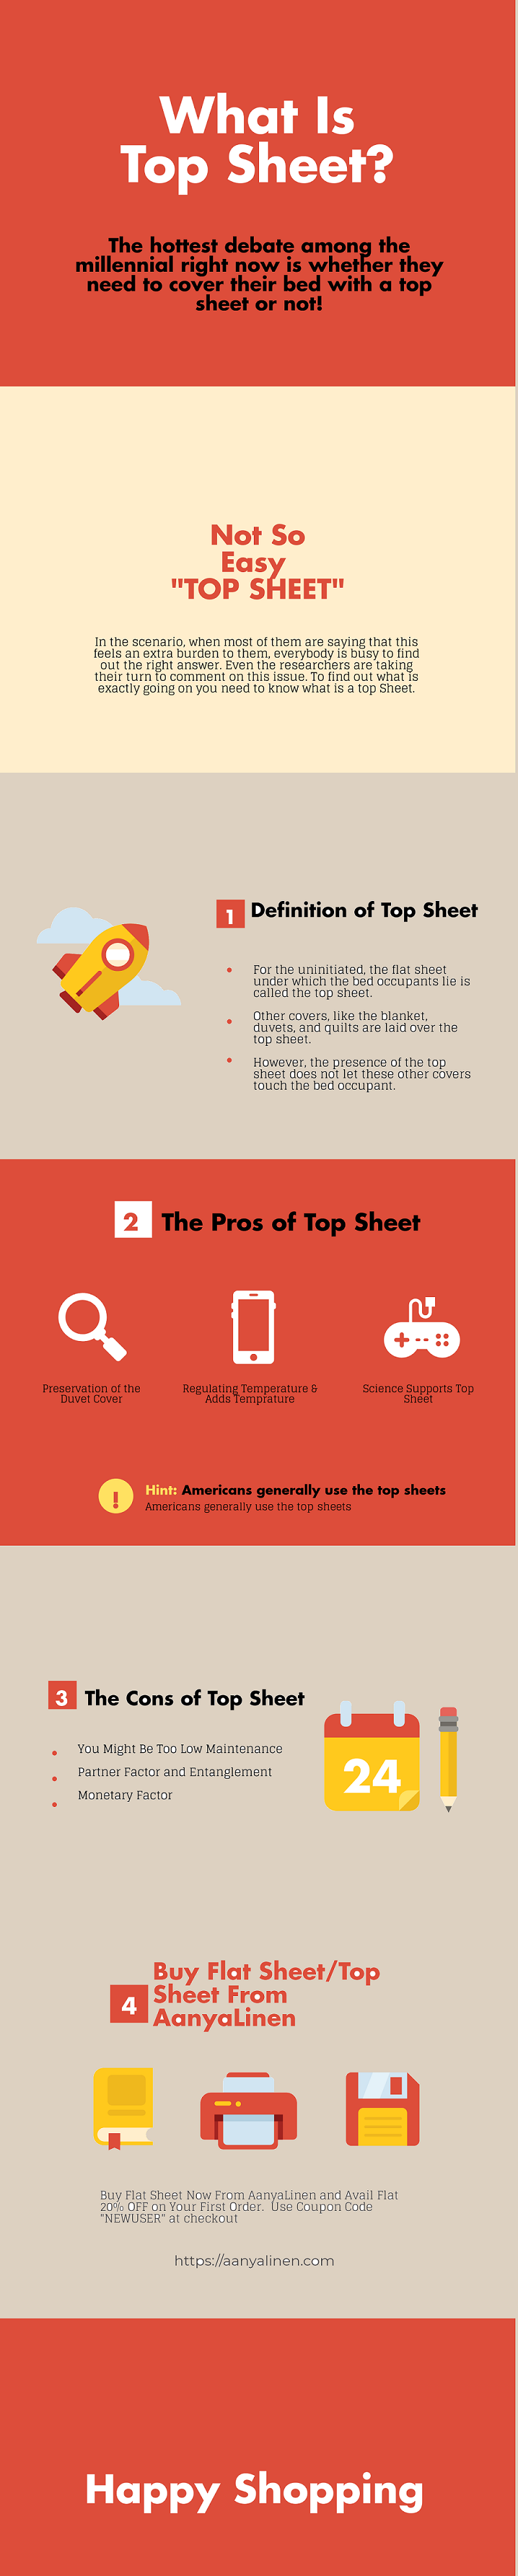 what is top sheet